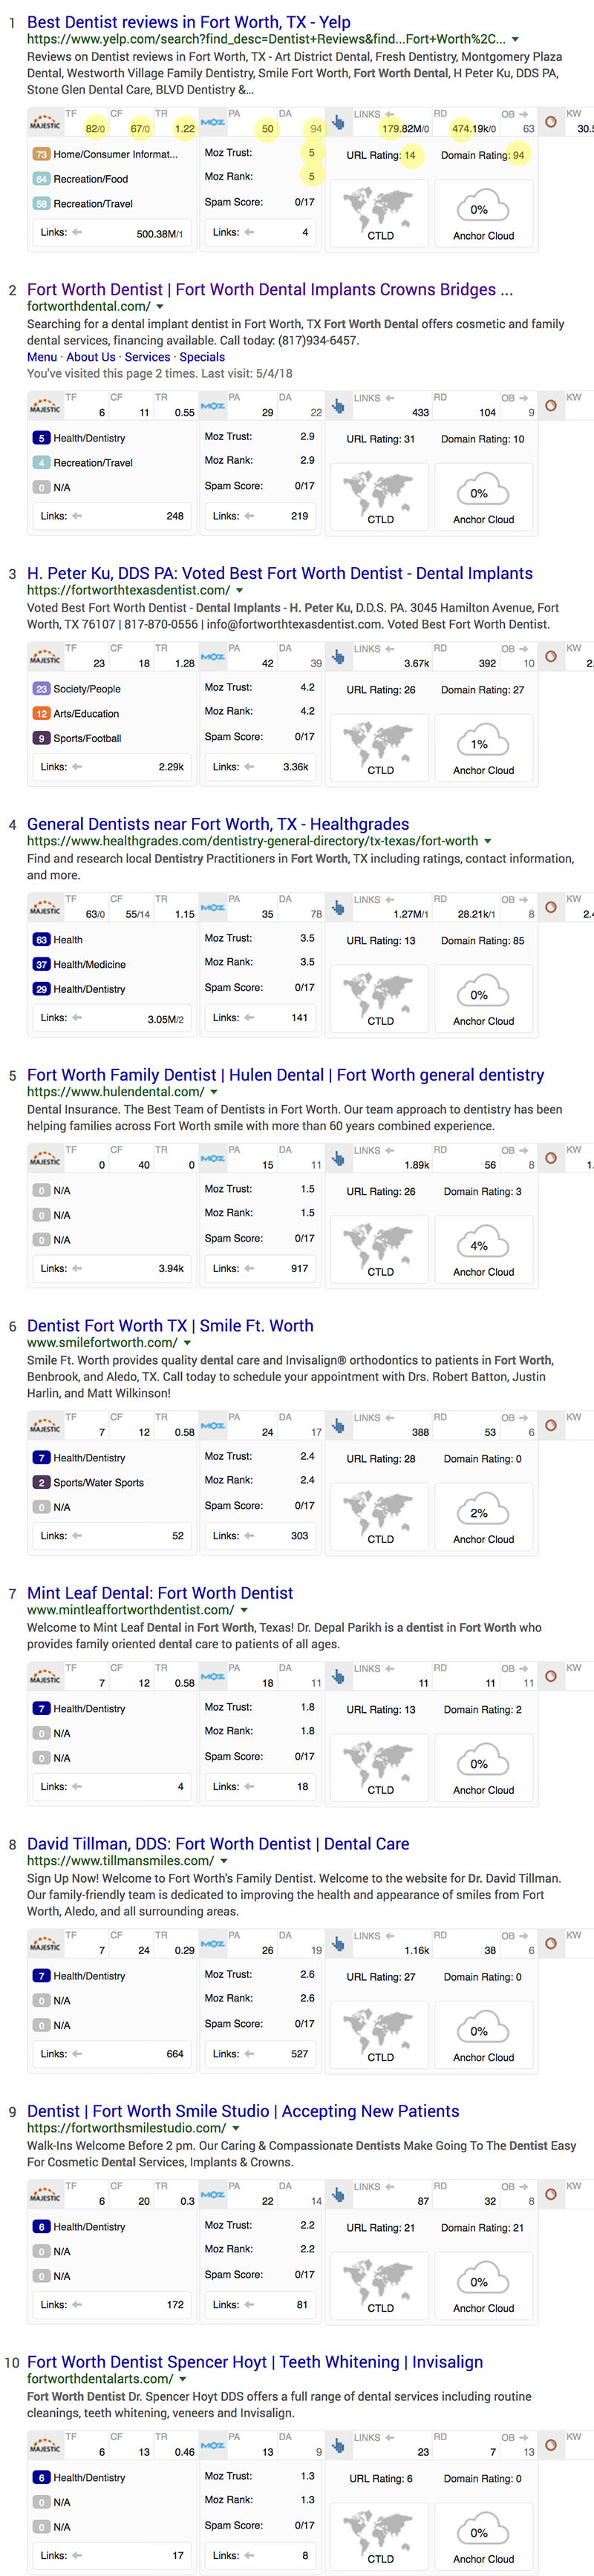 Fort Worth Dentist SERP Metrics Zoomed